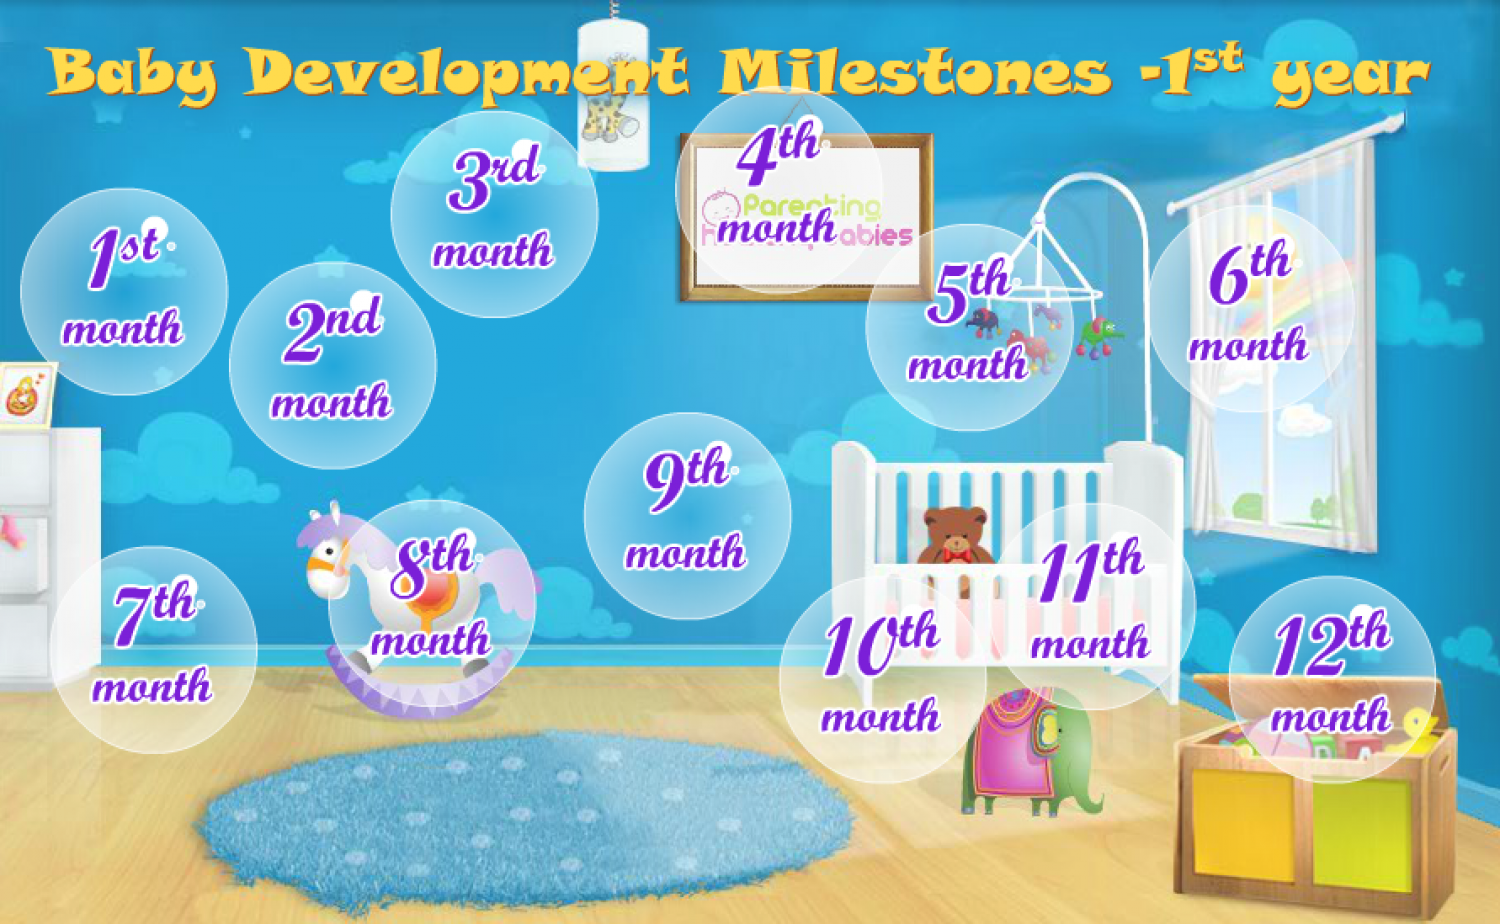 Child Development Milestones - 1st year  Infographic